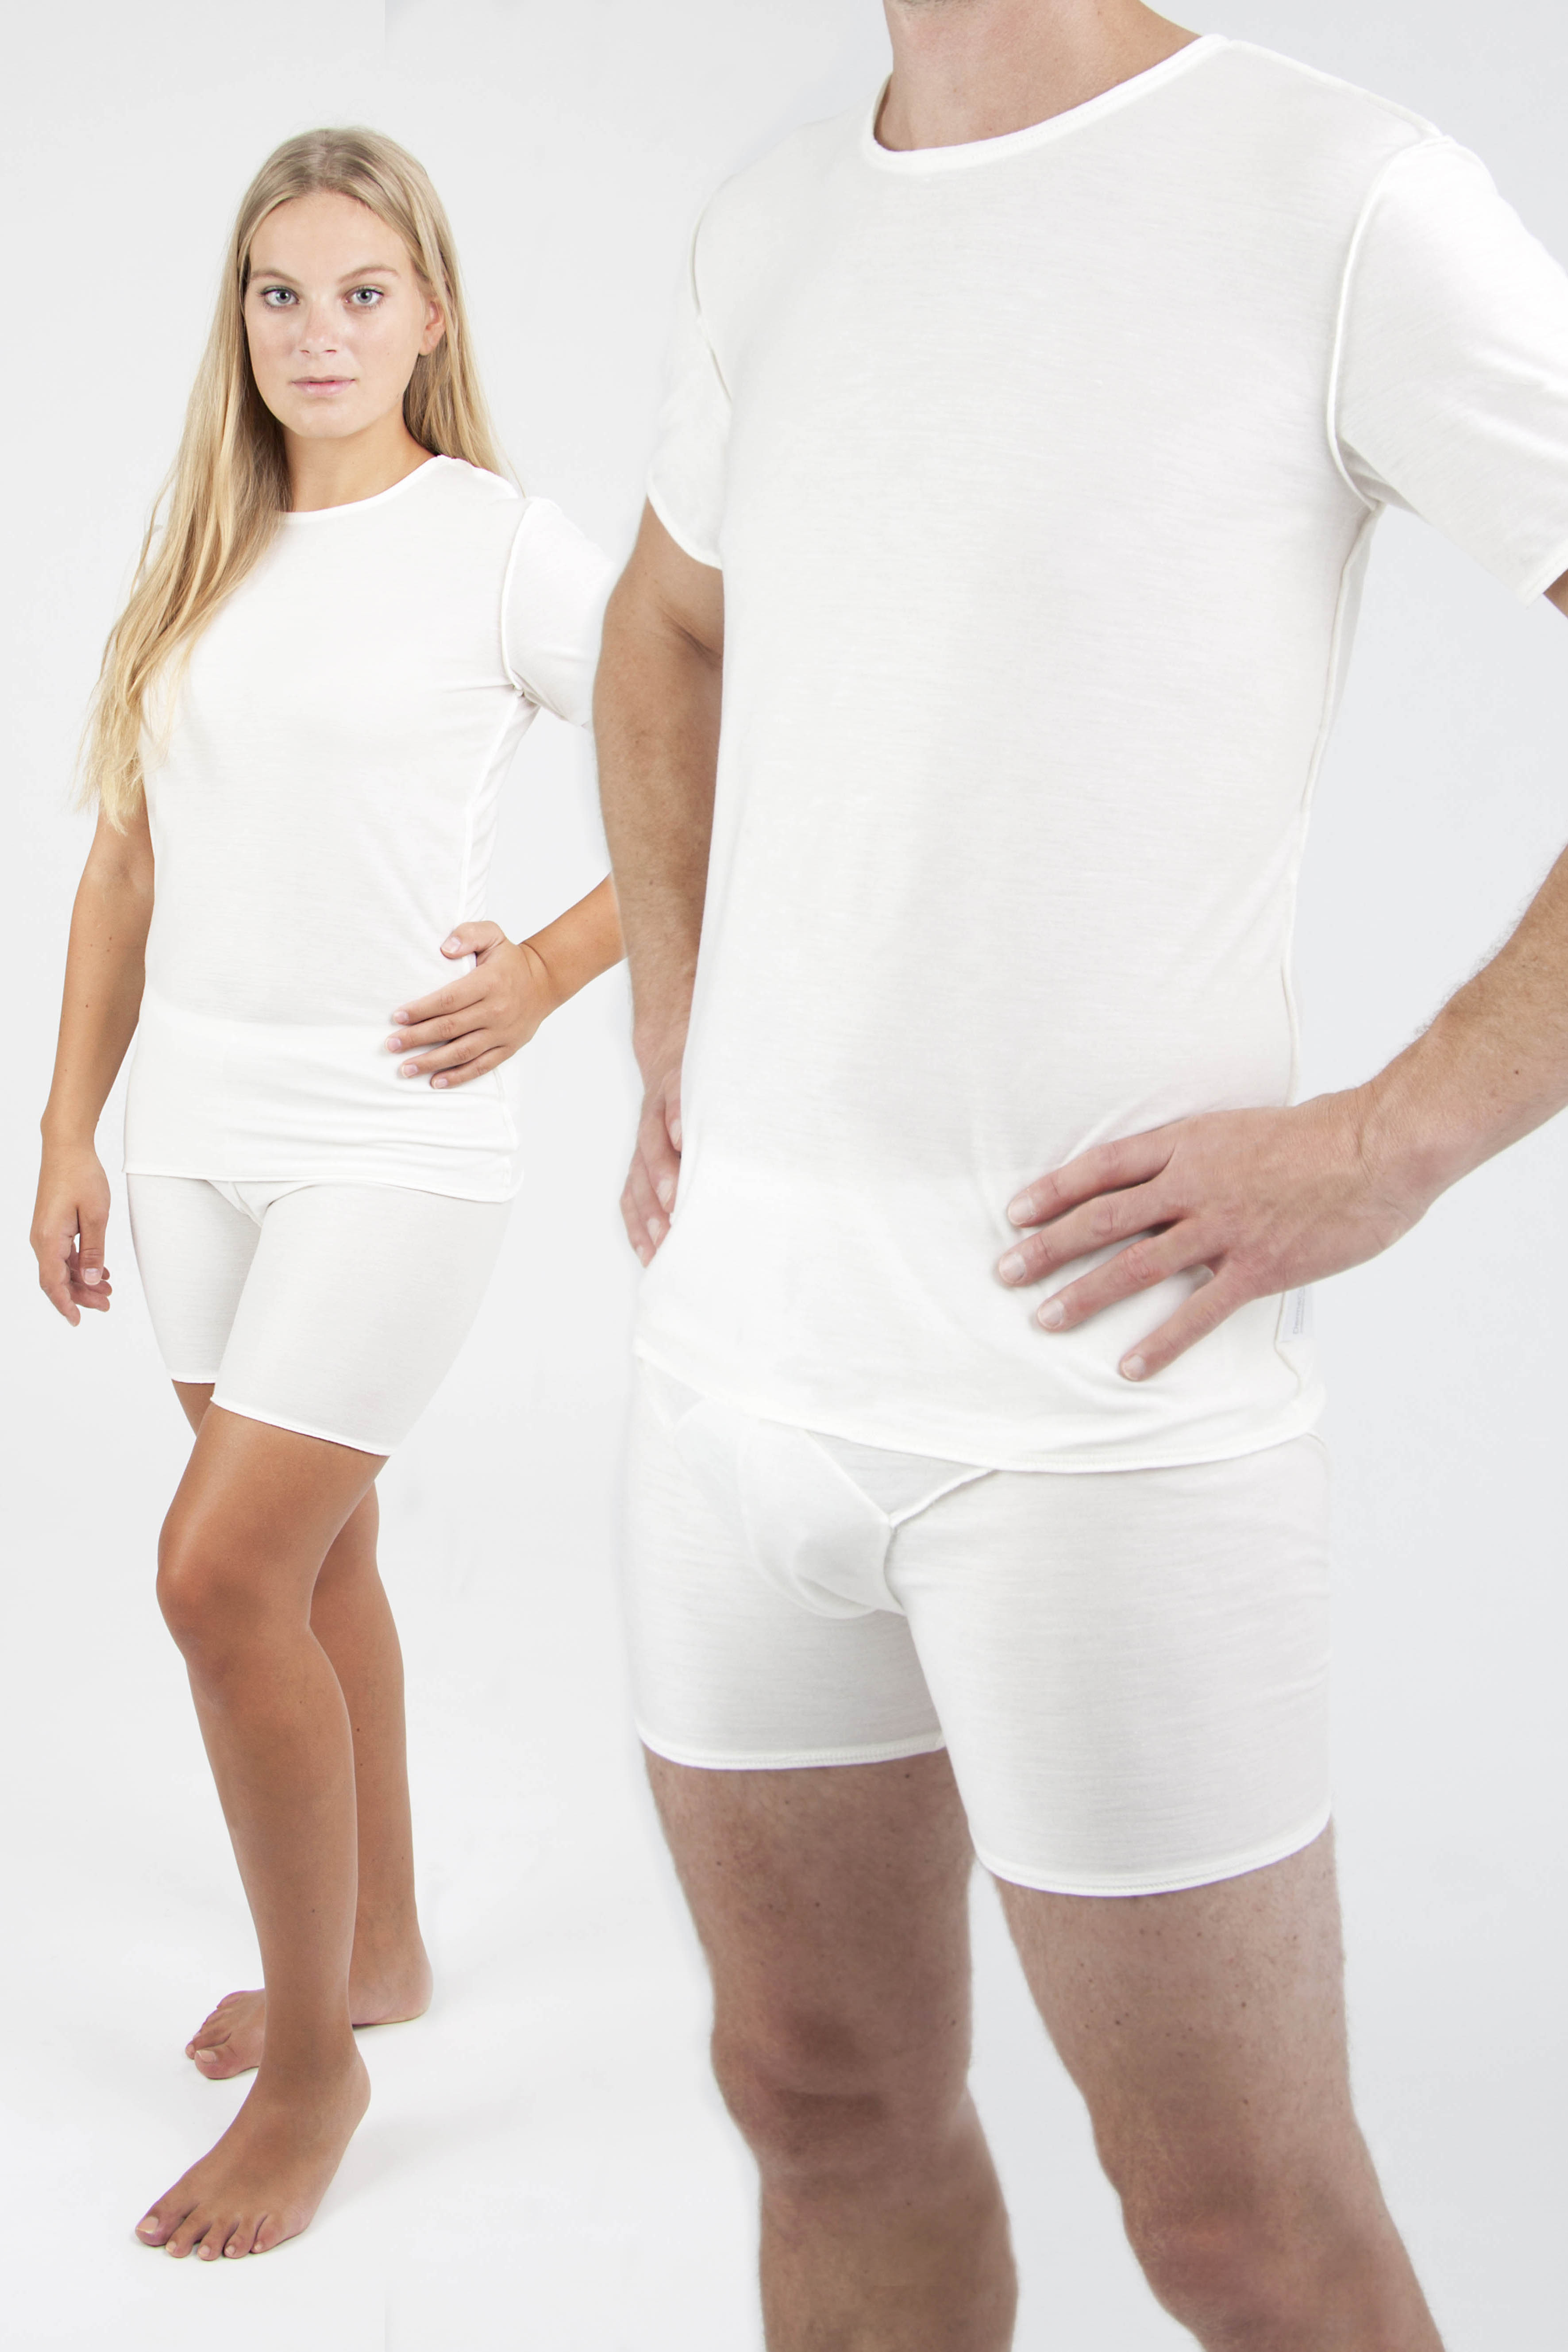 adults wearing DermaCura eczema clothing